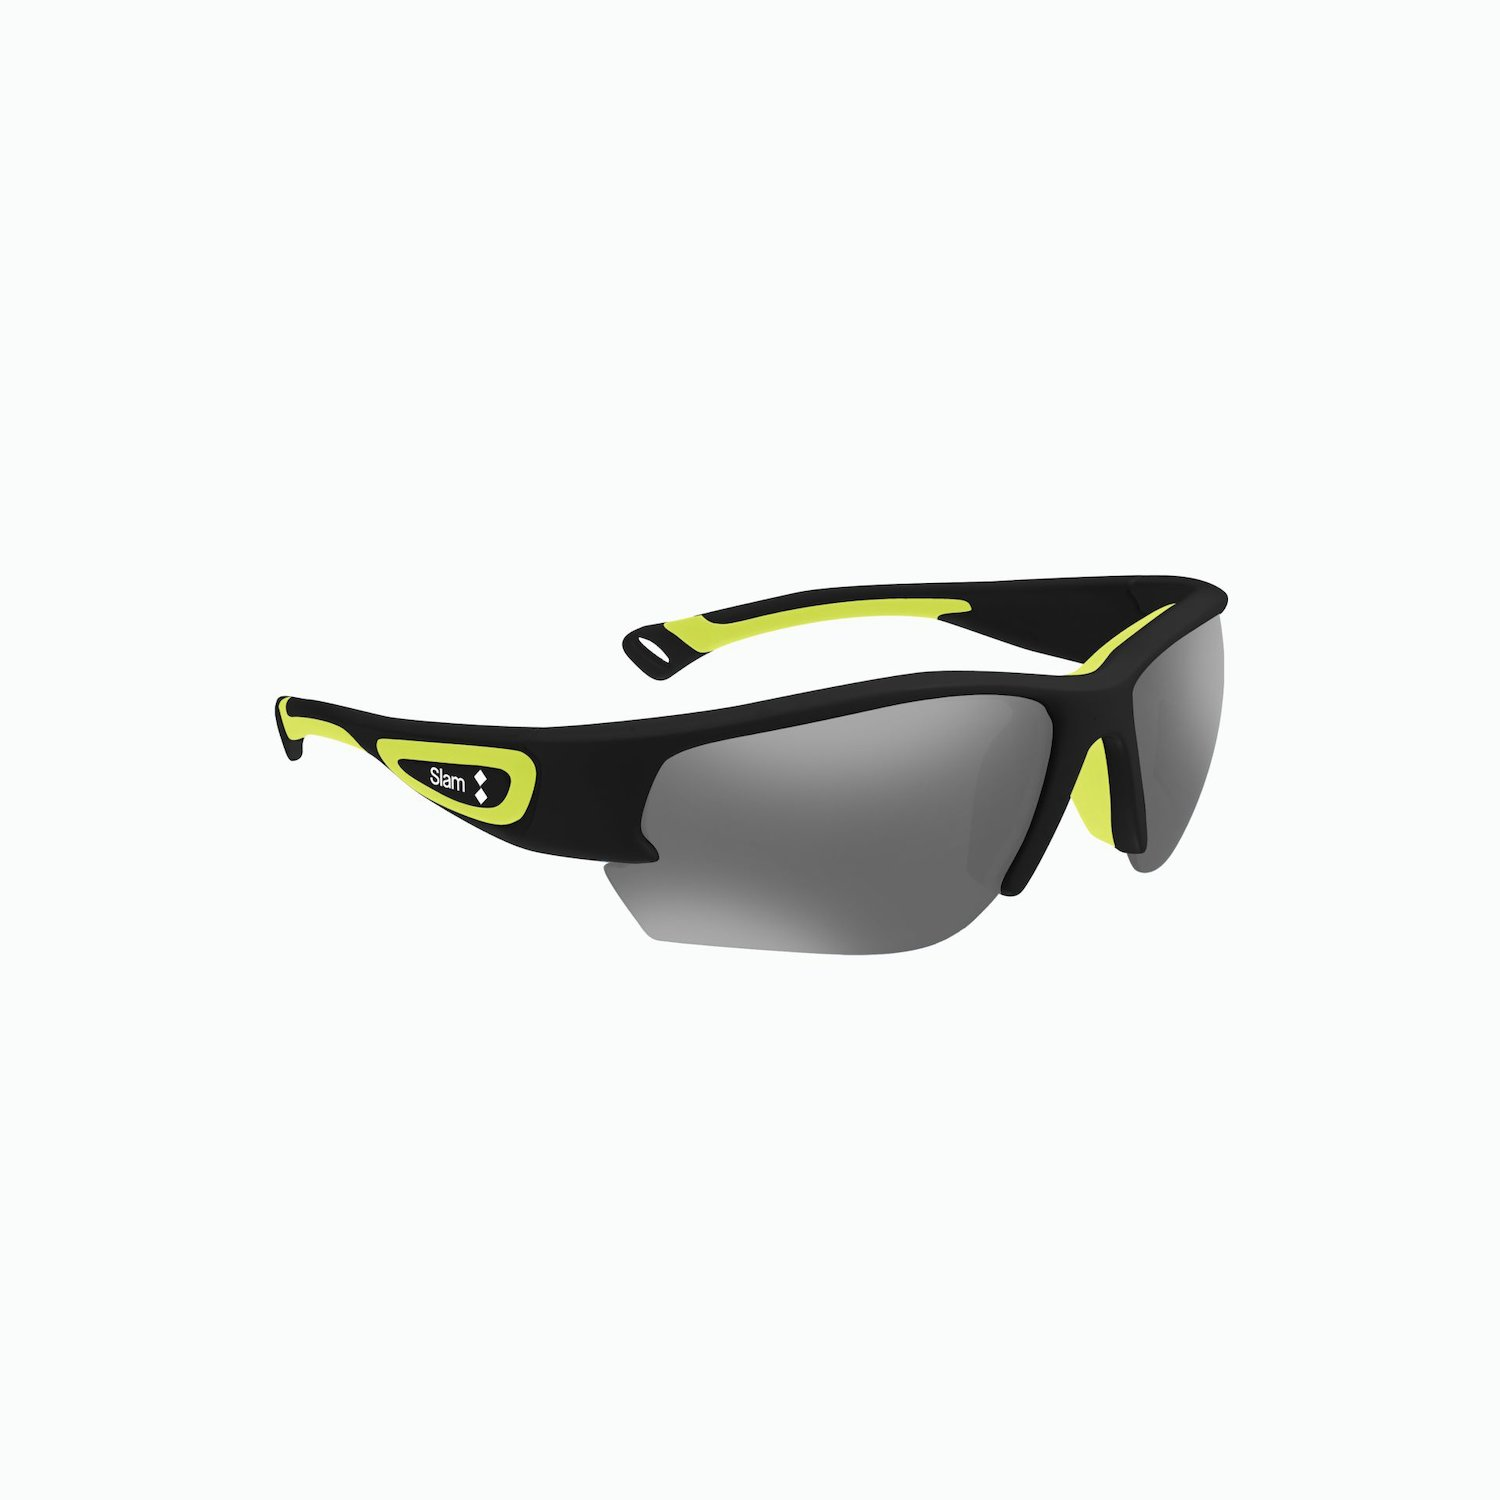 Racer Sunglasses - Black / Lime / Smoke Grey